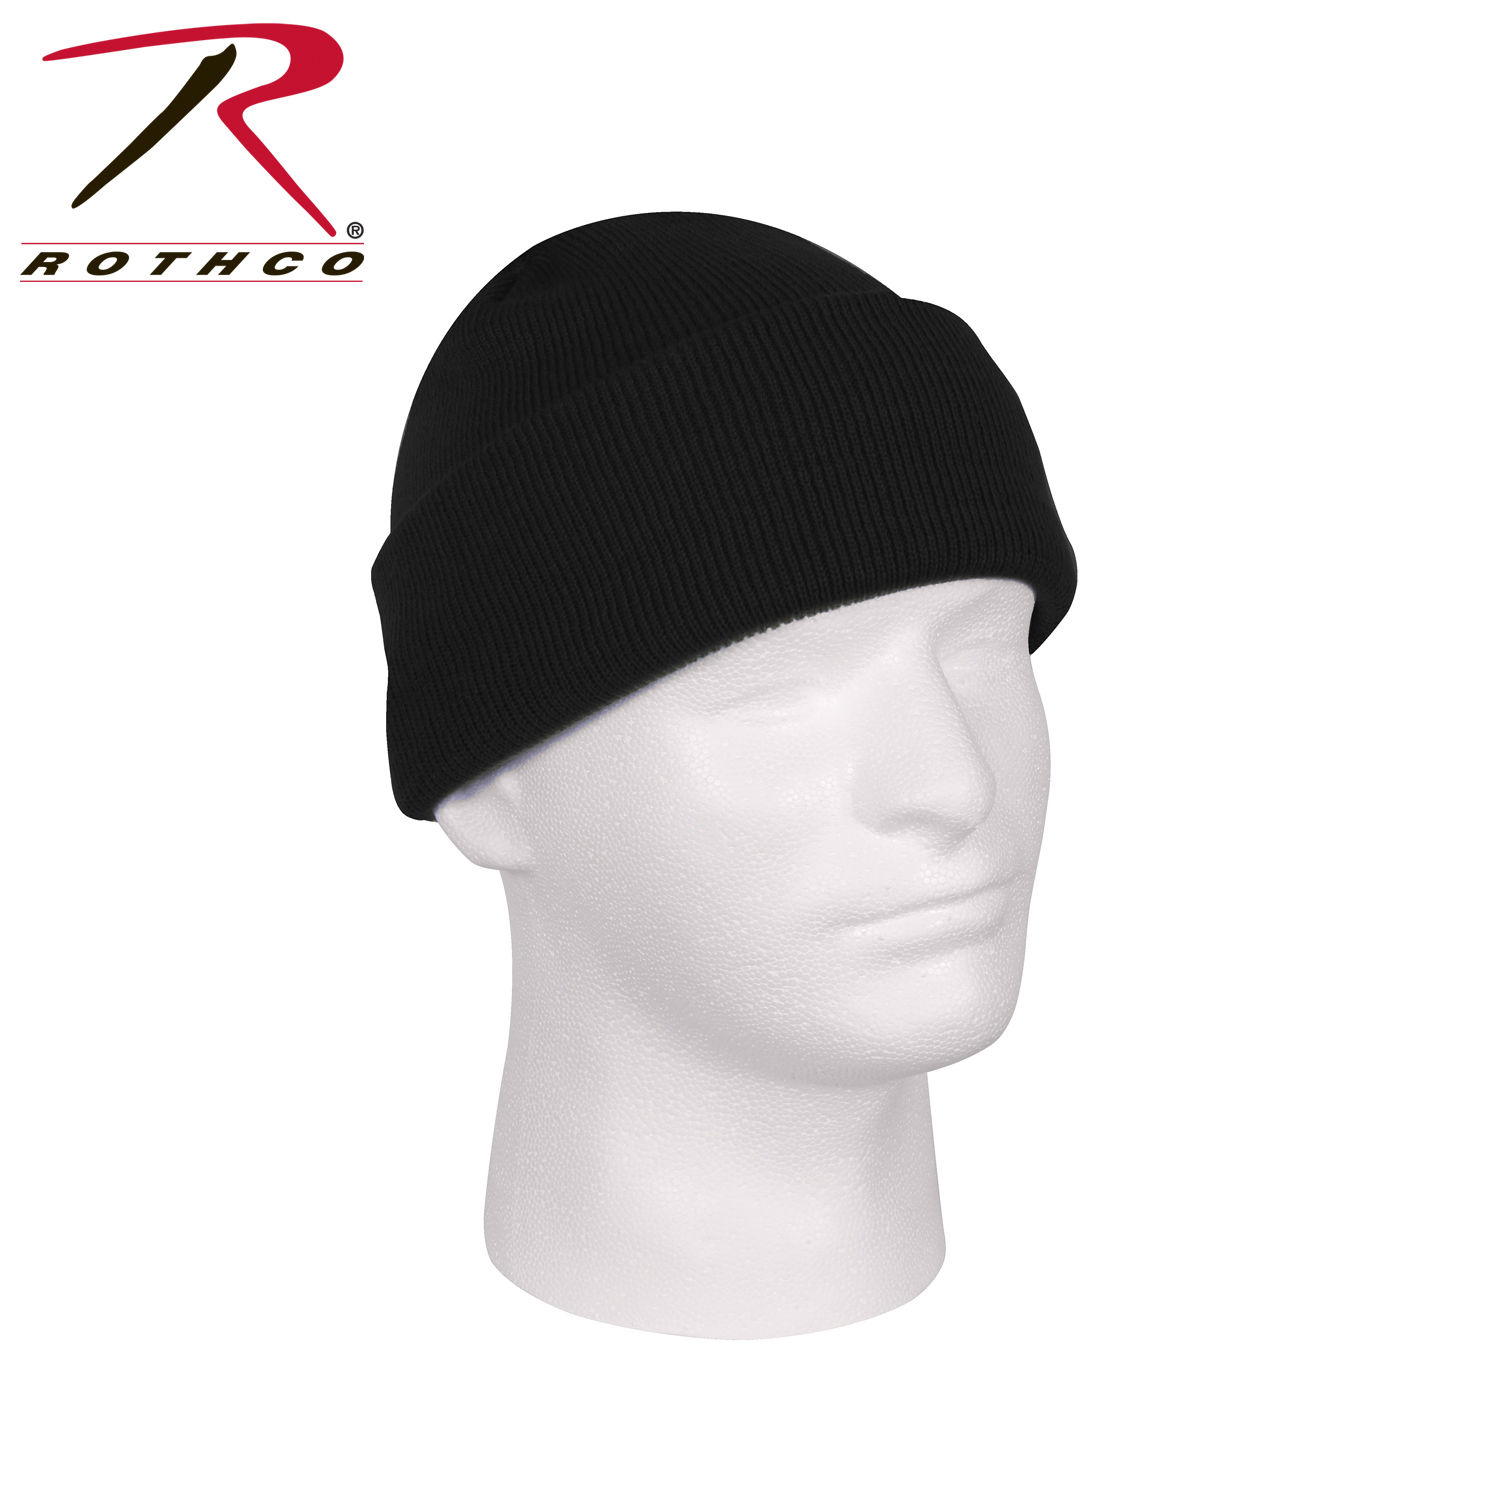 Loading zoom. Rothco Deluxe Fine Knit Watch Cap ... cad1c781f0c4